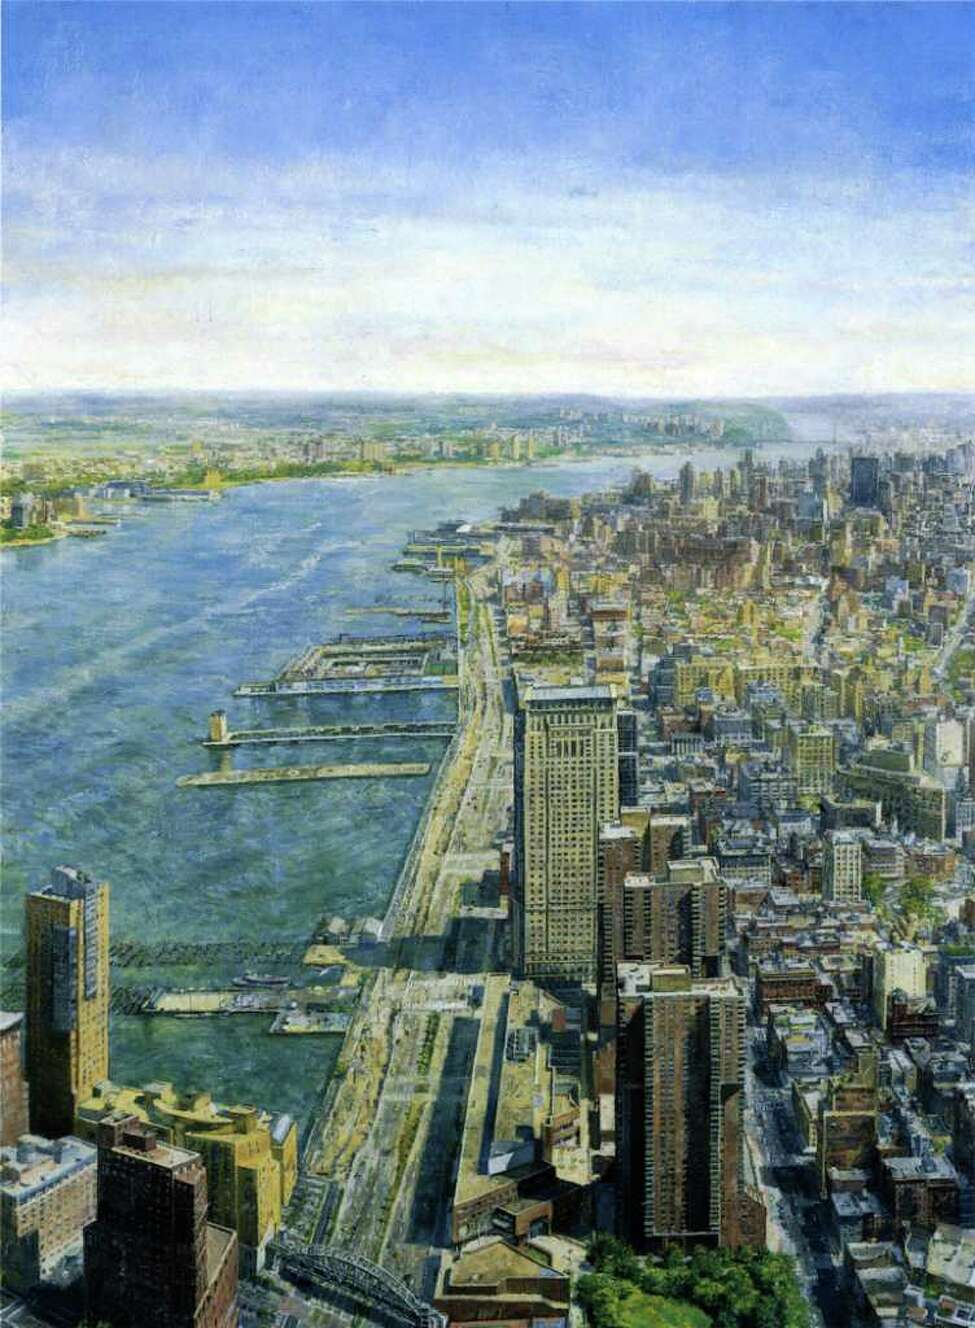 This oil painting, titled From World Trade Center, Looking Northwest by Sjoerd Doting, will be displayed in the exhibition Before the Fall: Remembering the World Trade Center, at the New York State Museum. The exhibition runs through April 28 in the West Gallery.